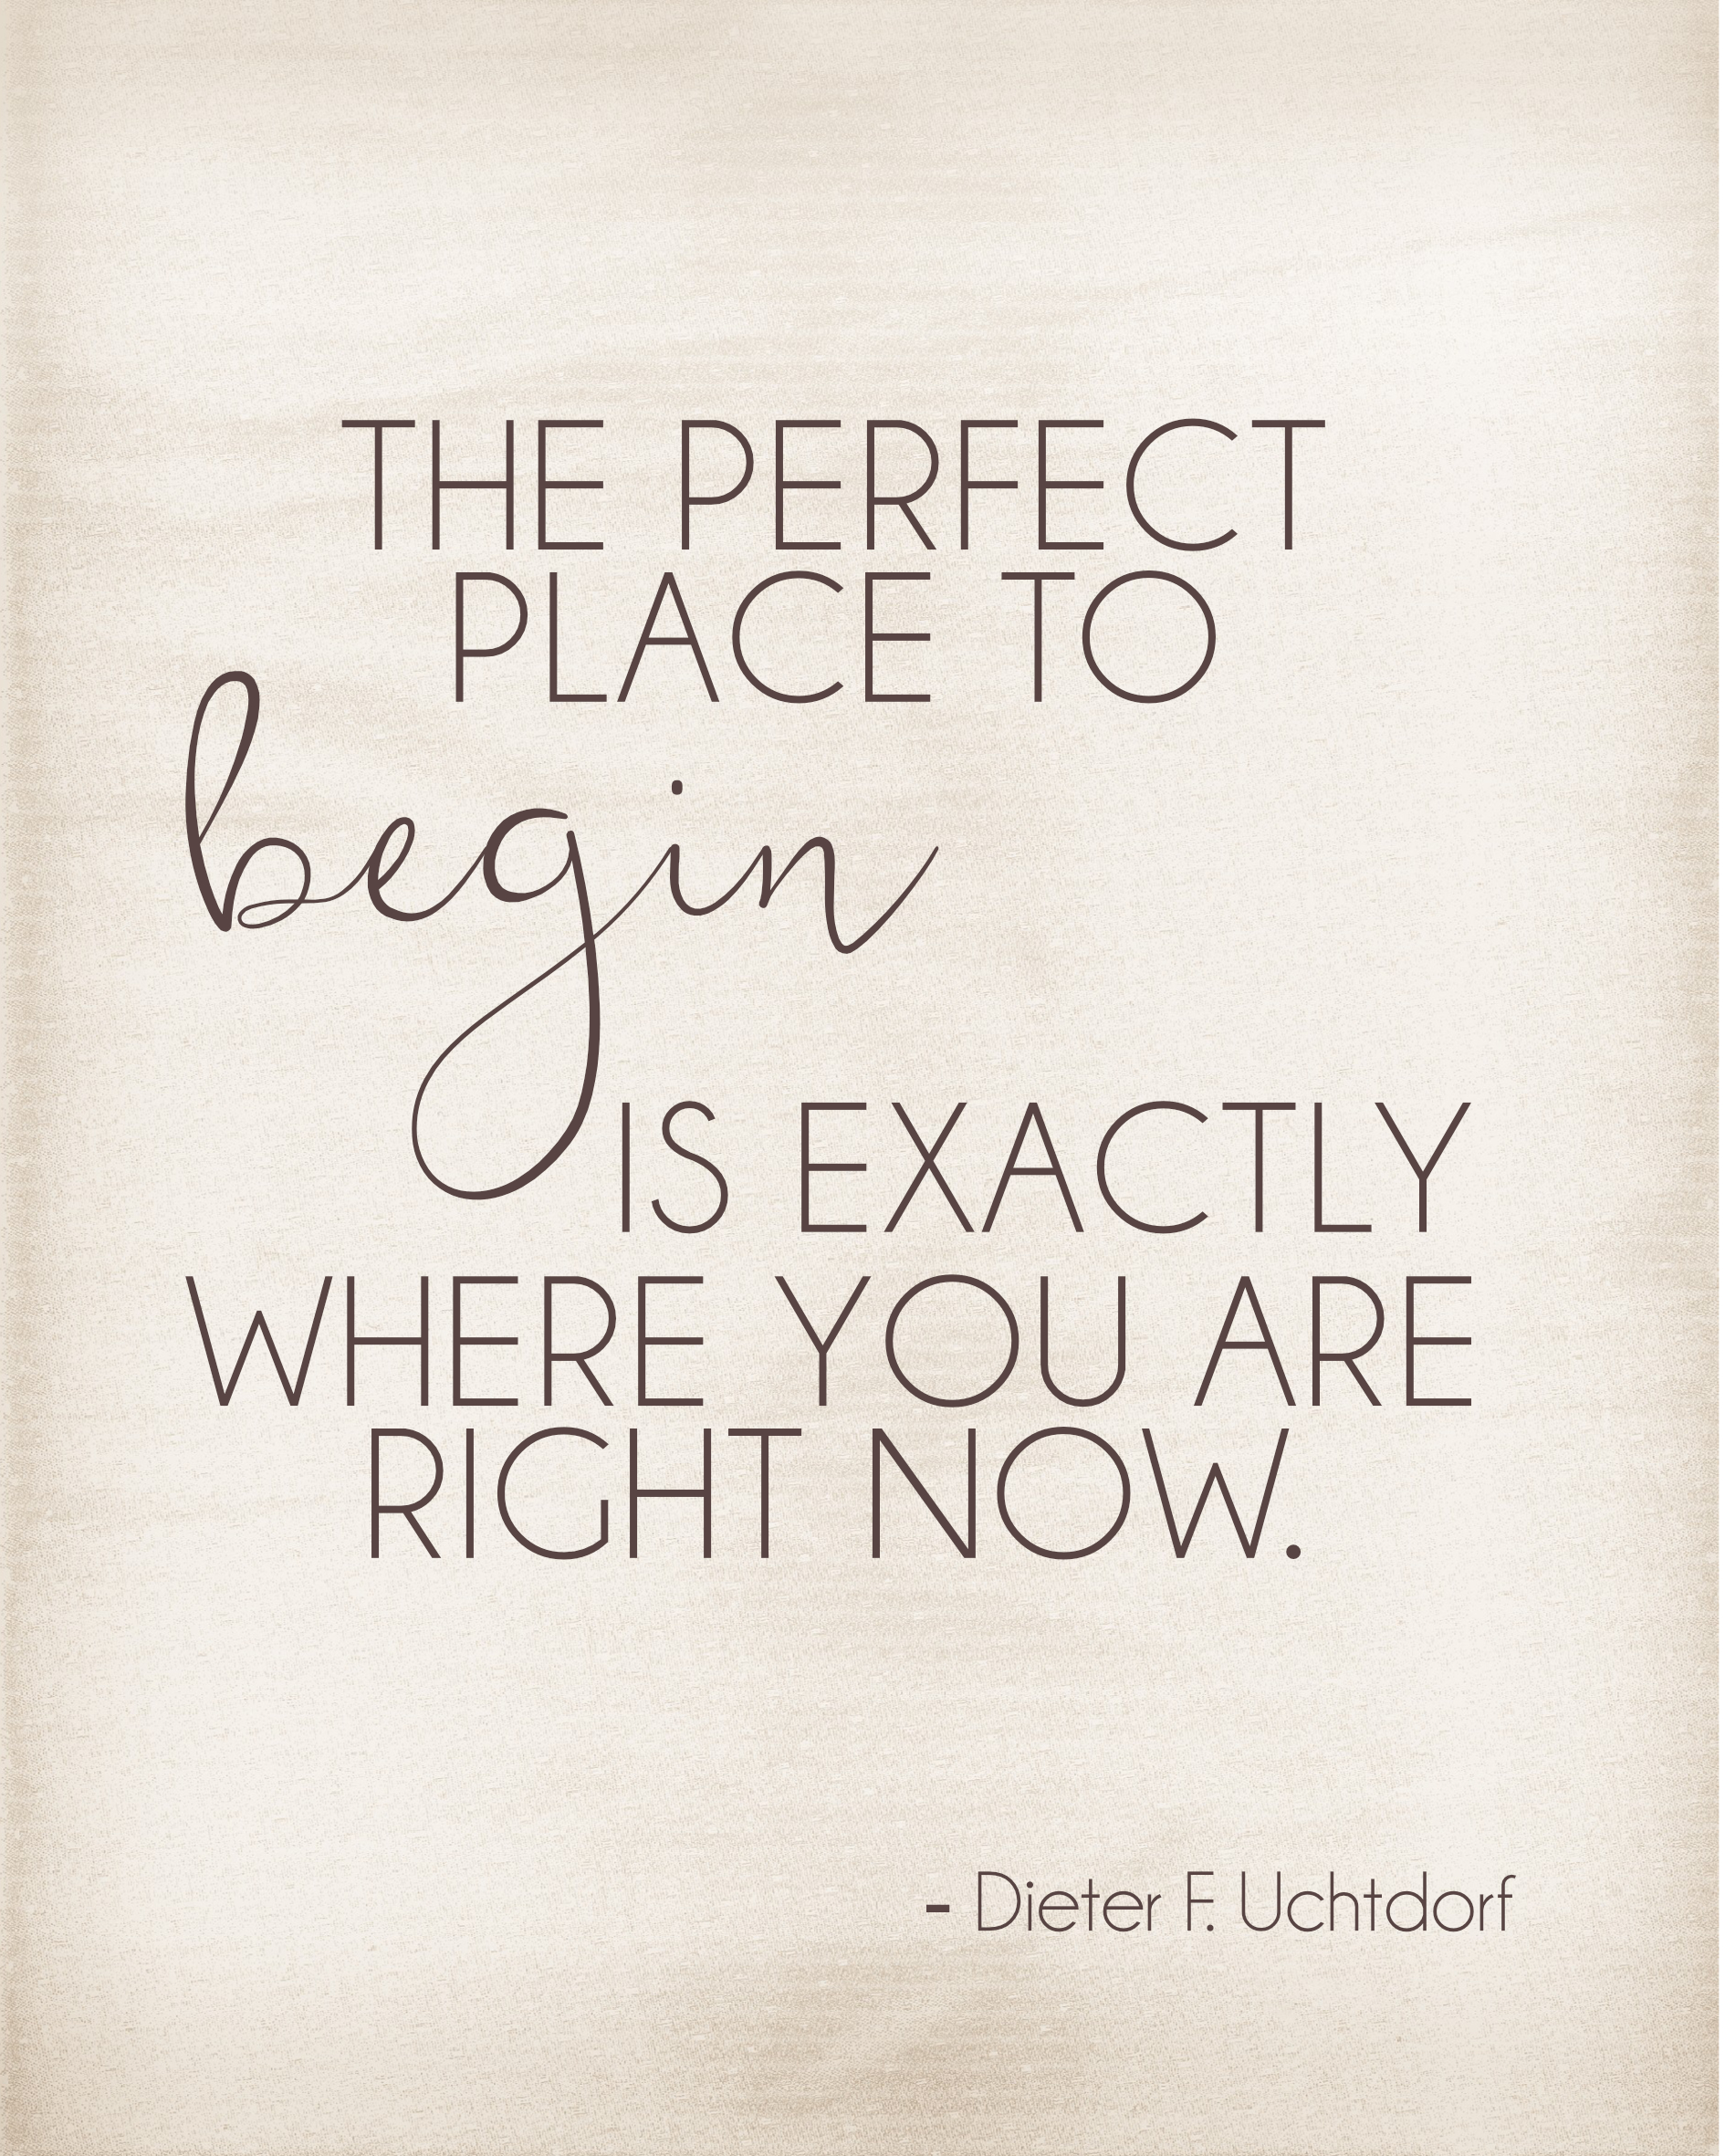 the perfect place to begin quote Dieter F. Uchtdorf